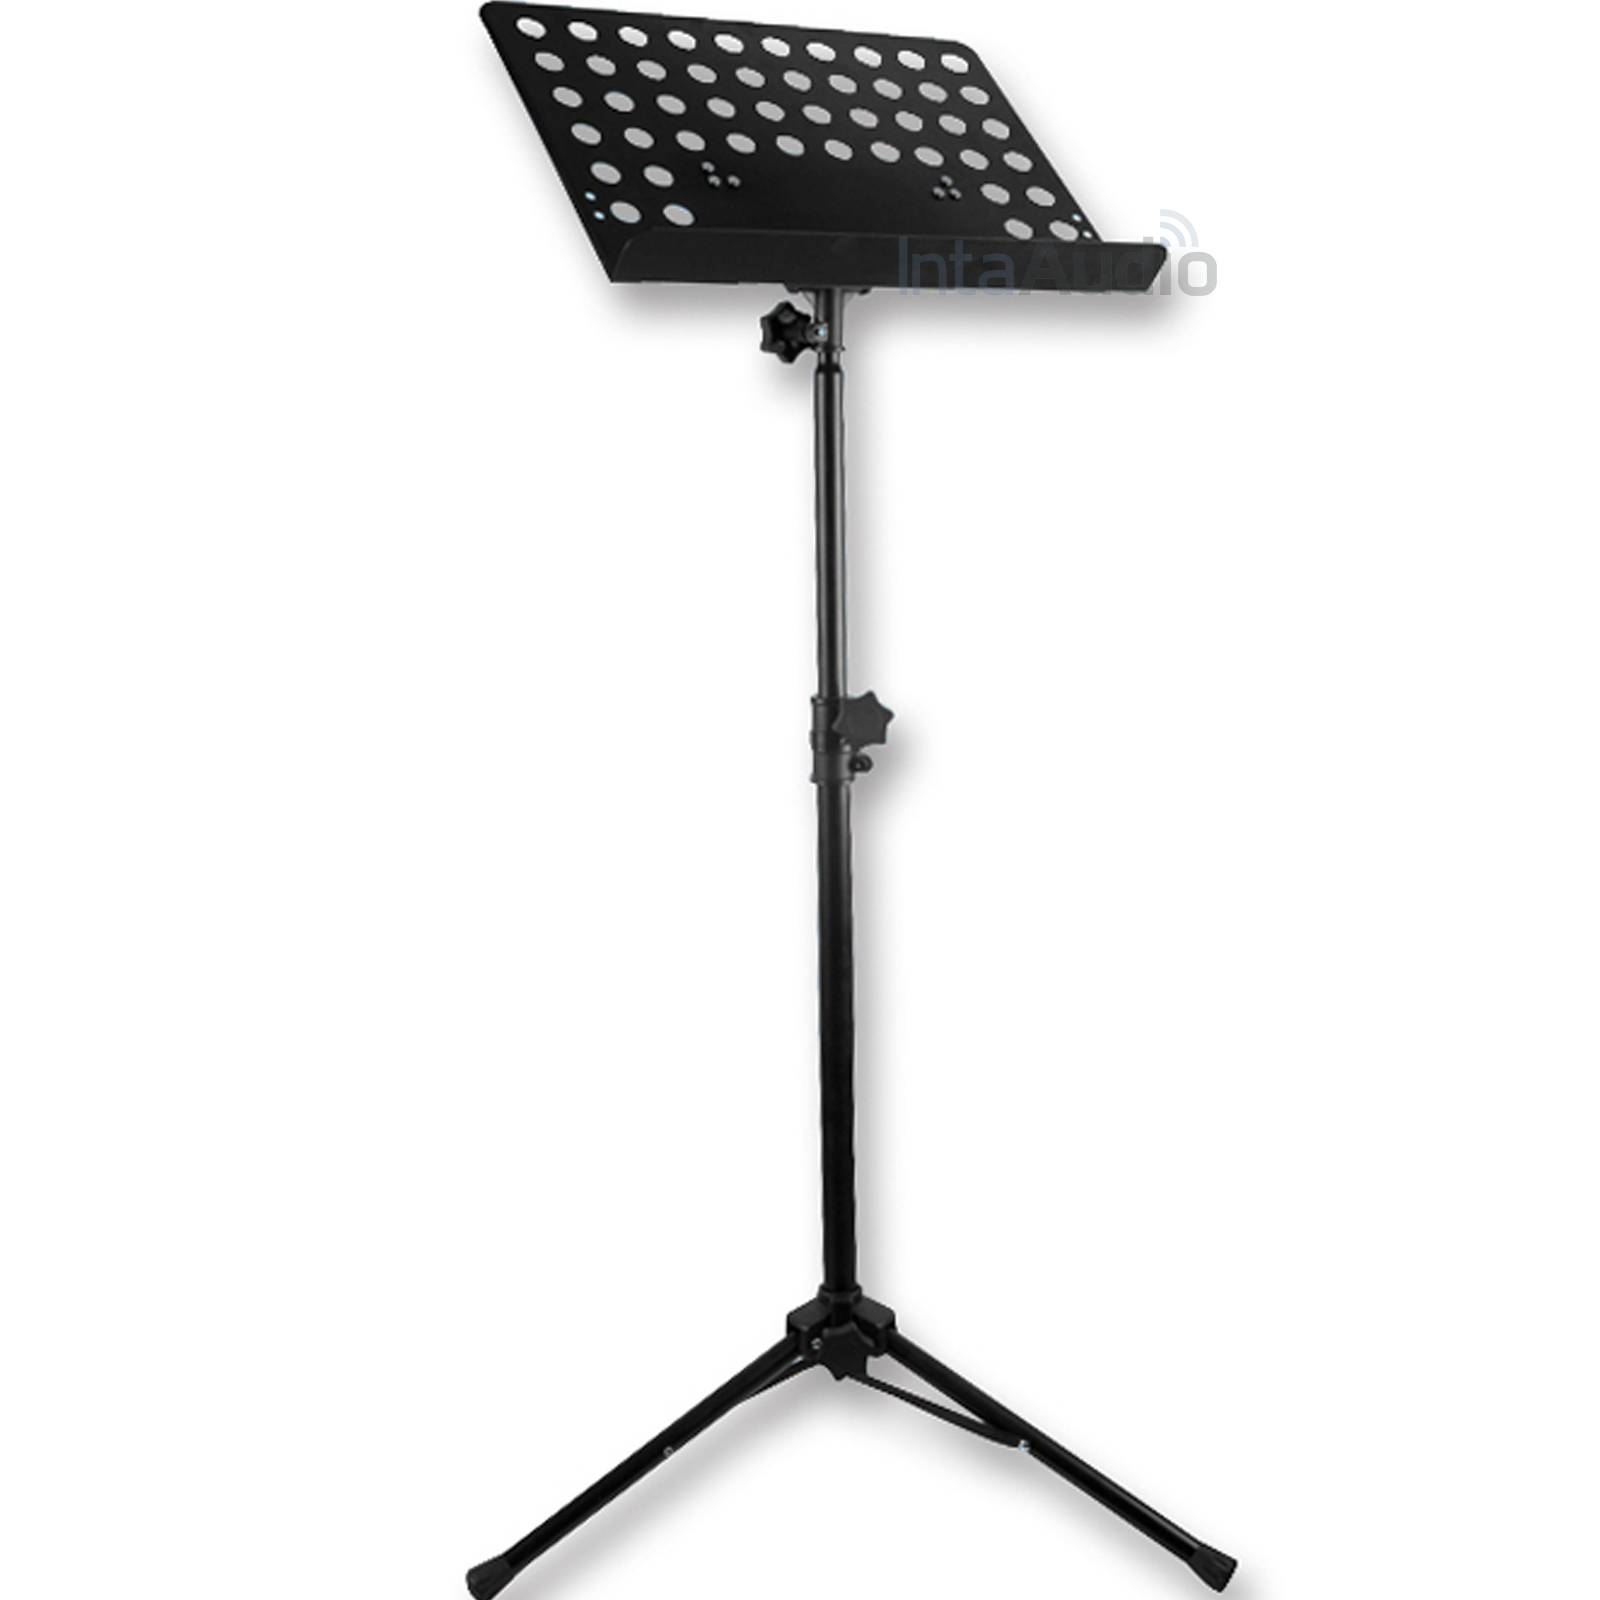 pulse music sheet stand black sheet music stands from inta audio uk. Black Bedroom Furniture Sets. Home Design Ideas